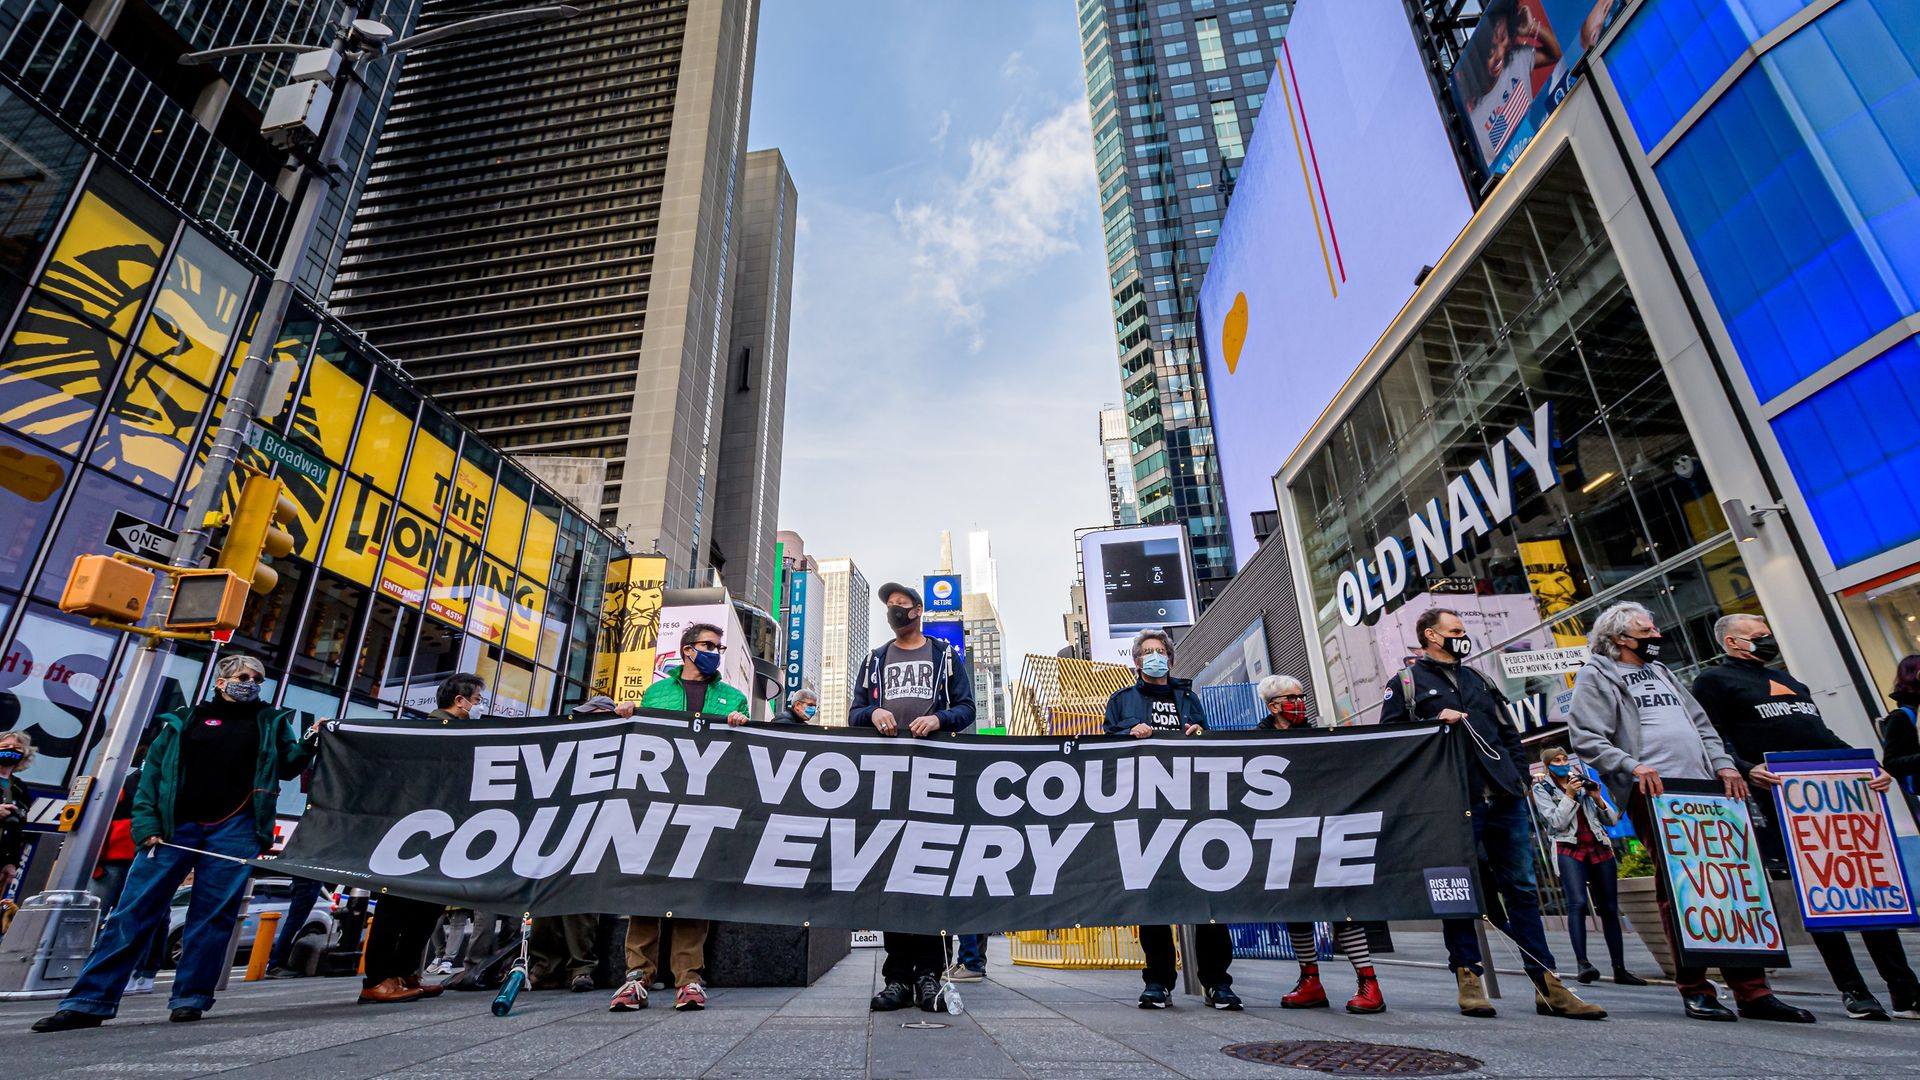 """Participants holding a banner reading: """"EVERY VOTE COUNTS/COUNT EVERY VOTE"""" at the protest in Times Square. - Credit: LightRocket via Getty Images"""